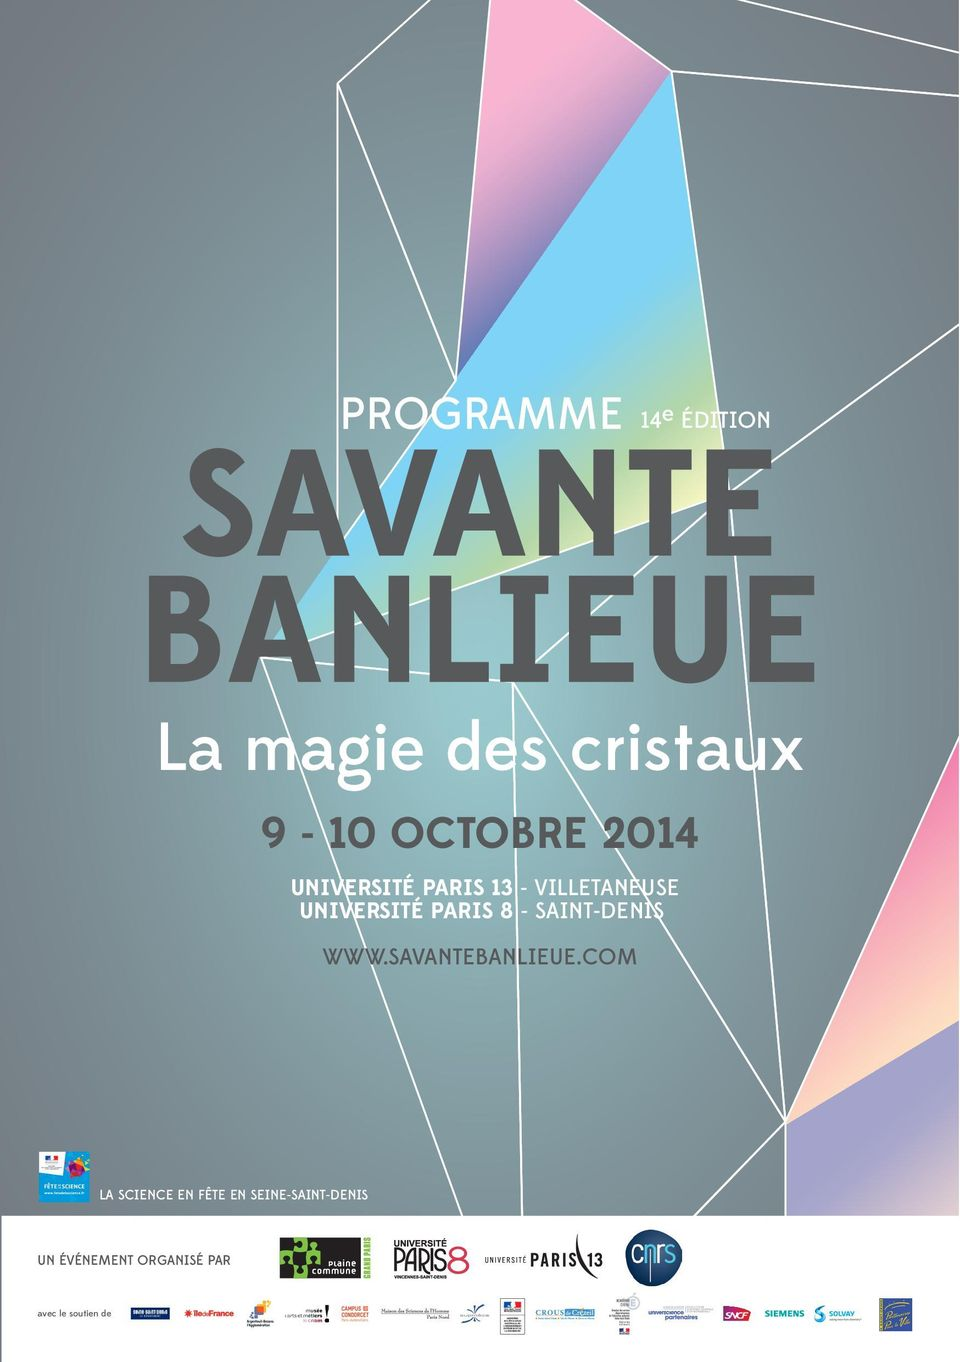 - SAINT-DENIS WWW.SAVANTEBANLIEUE.